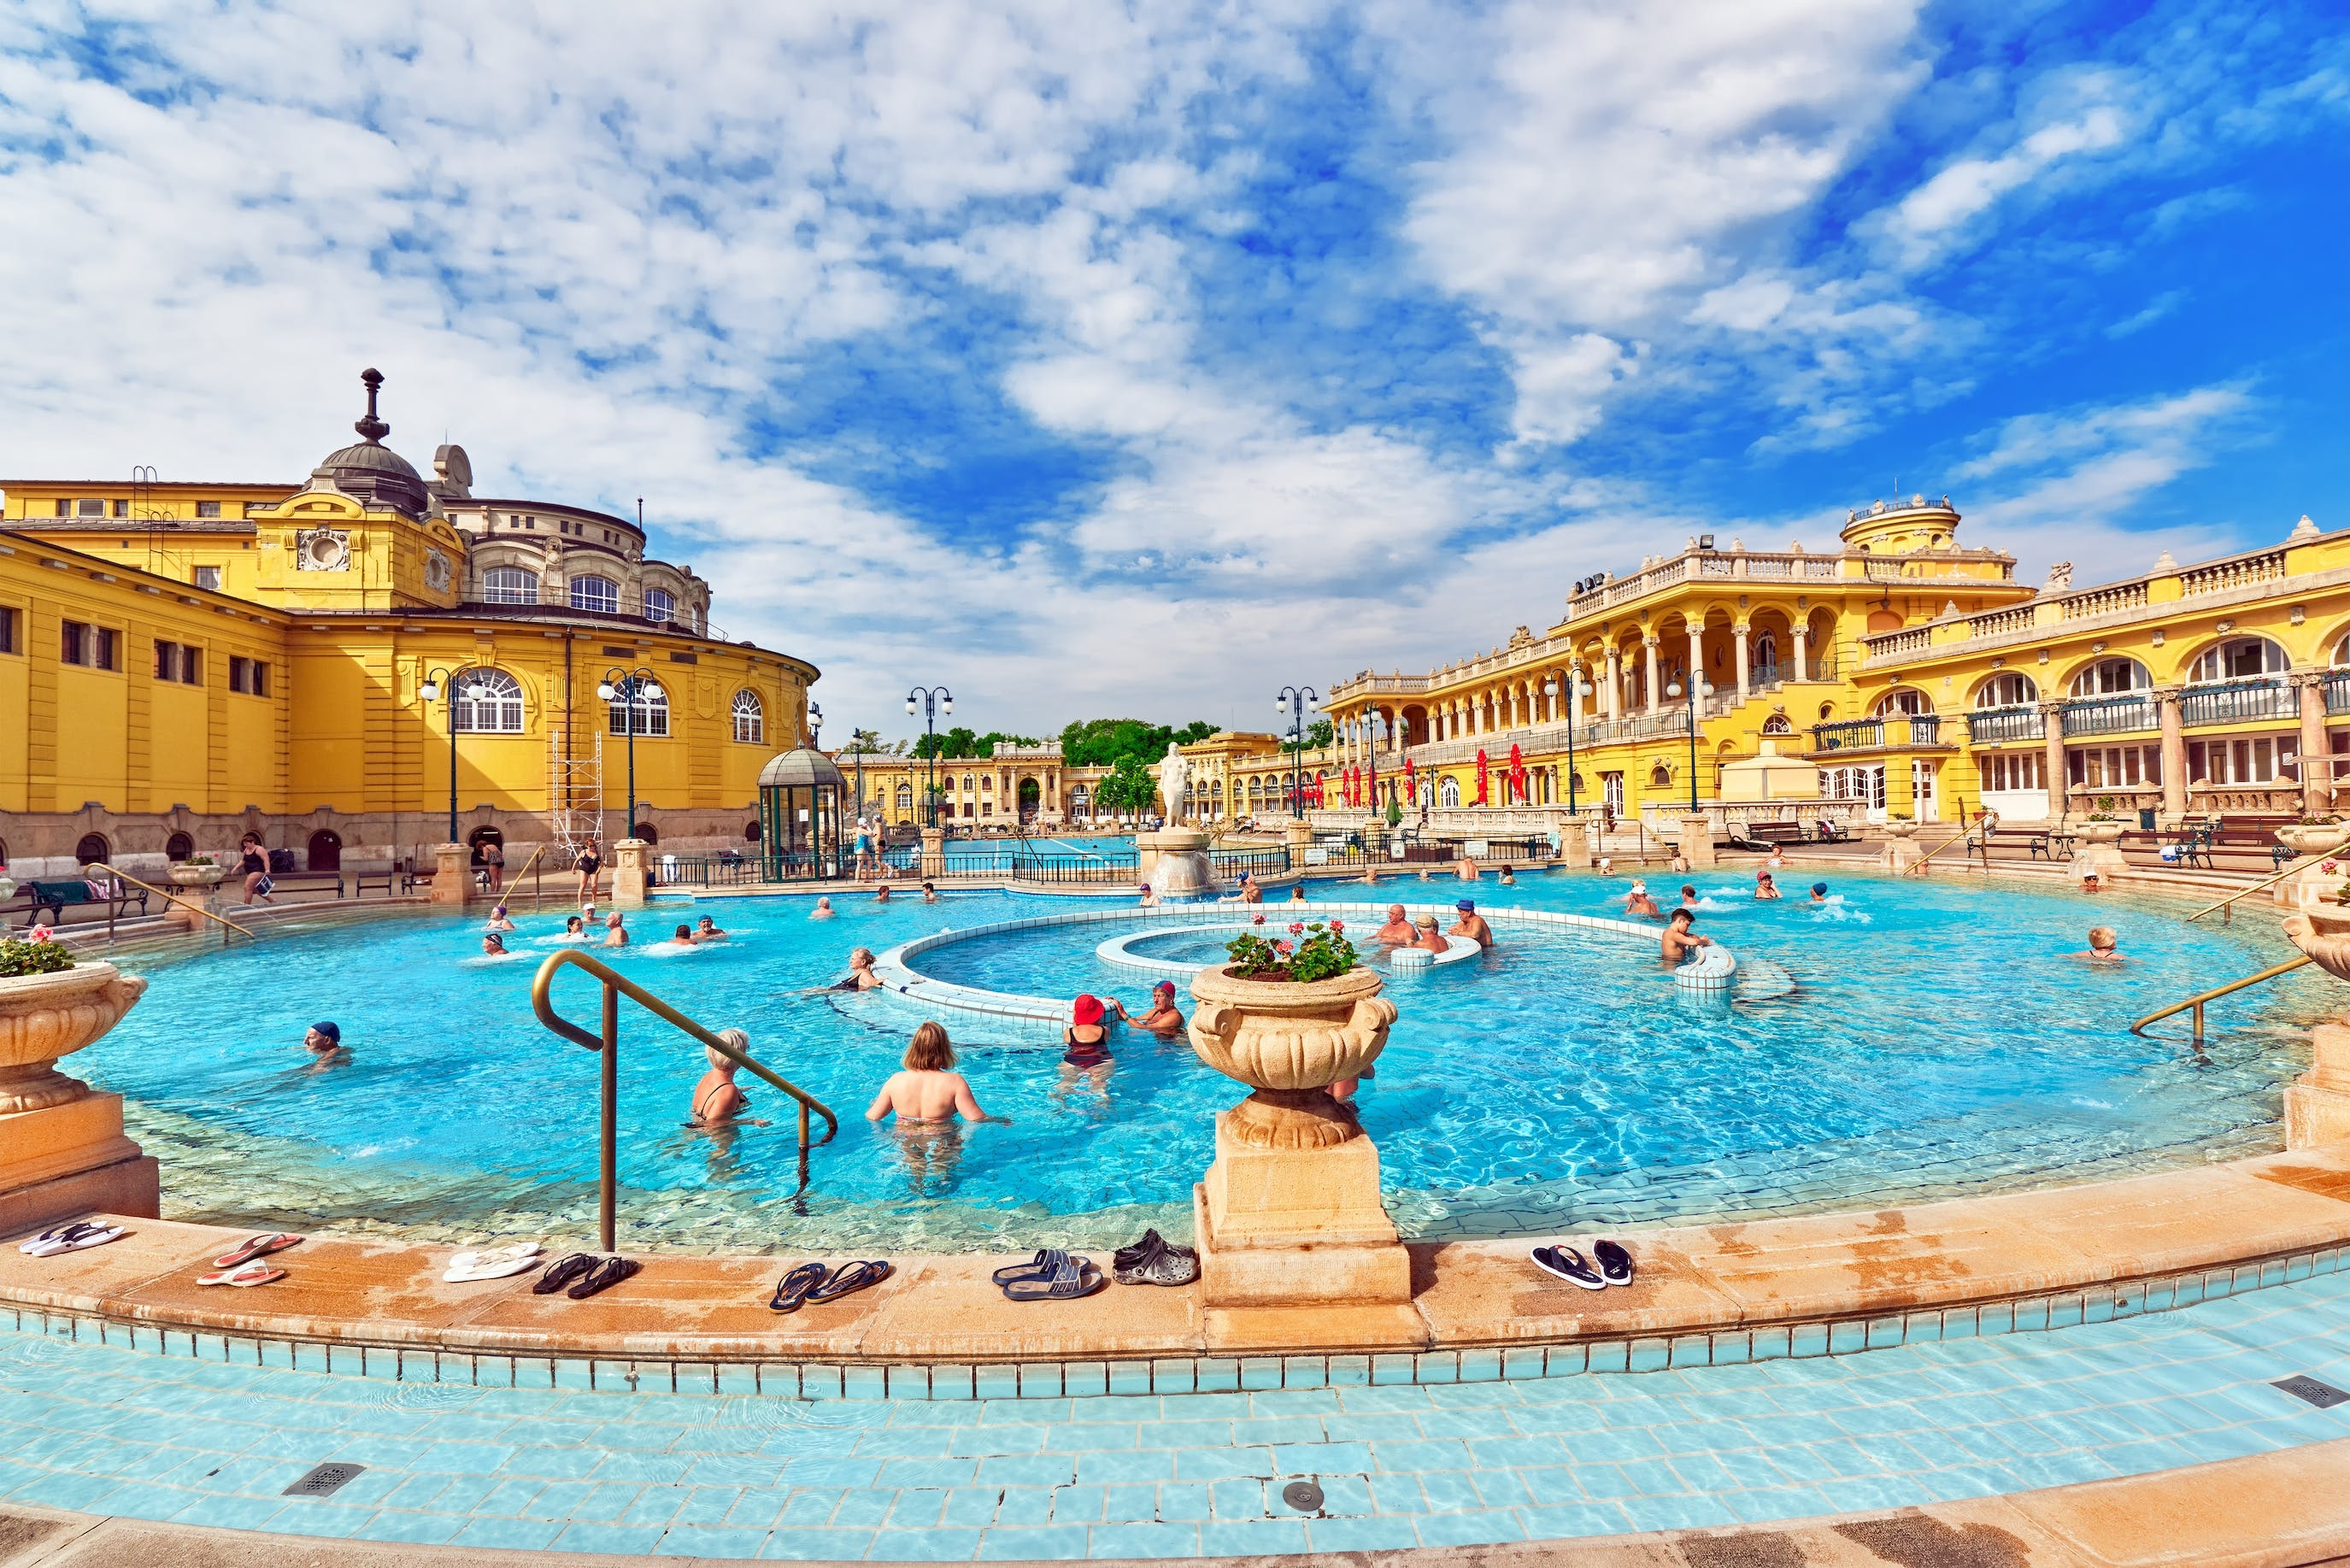 Budapest Szechenyi spa skip-the-line entrance with optional transfer